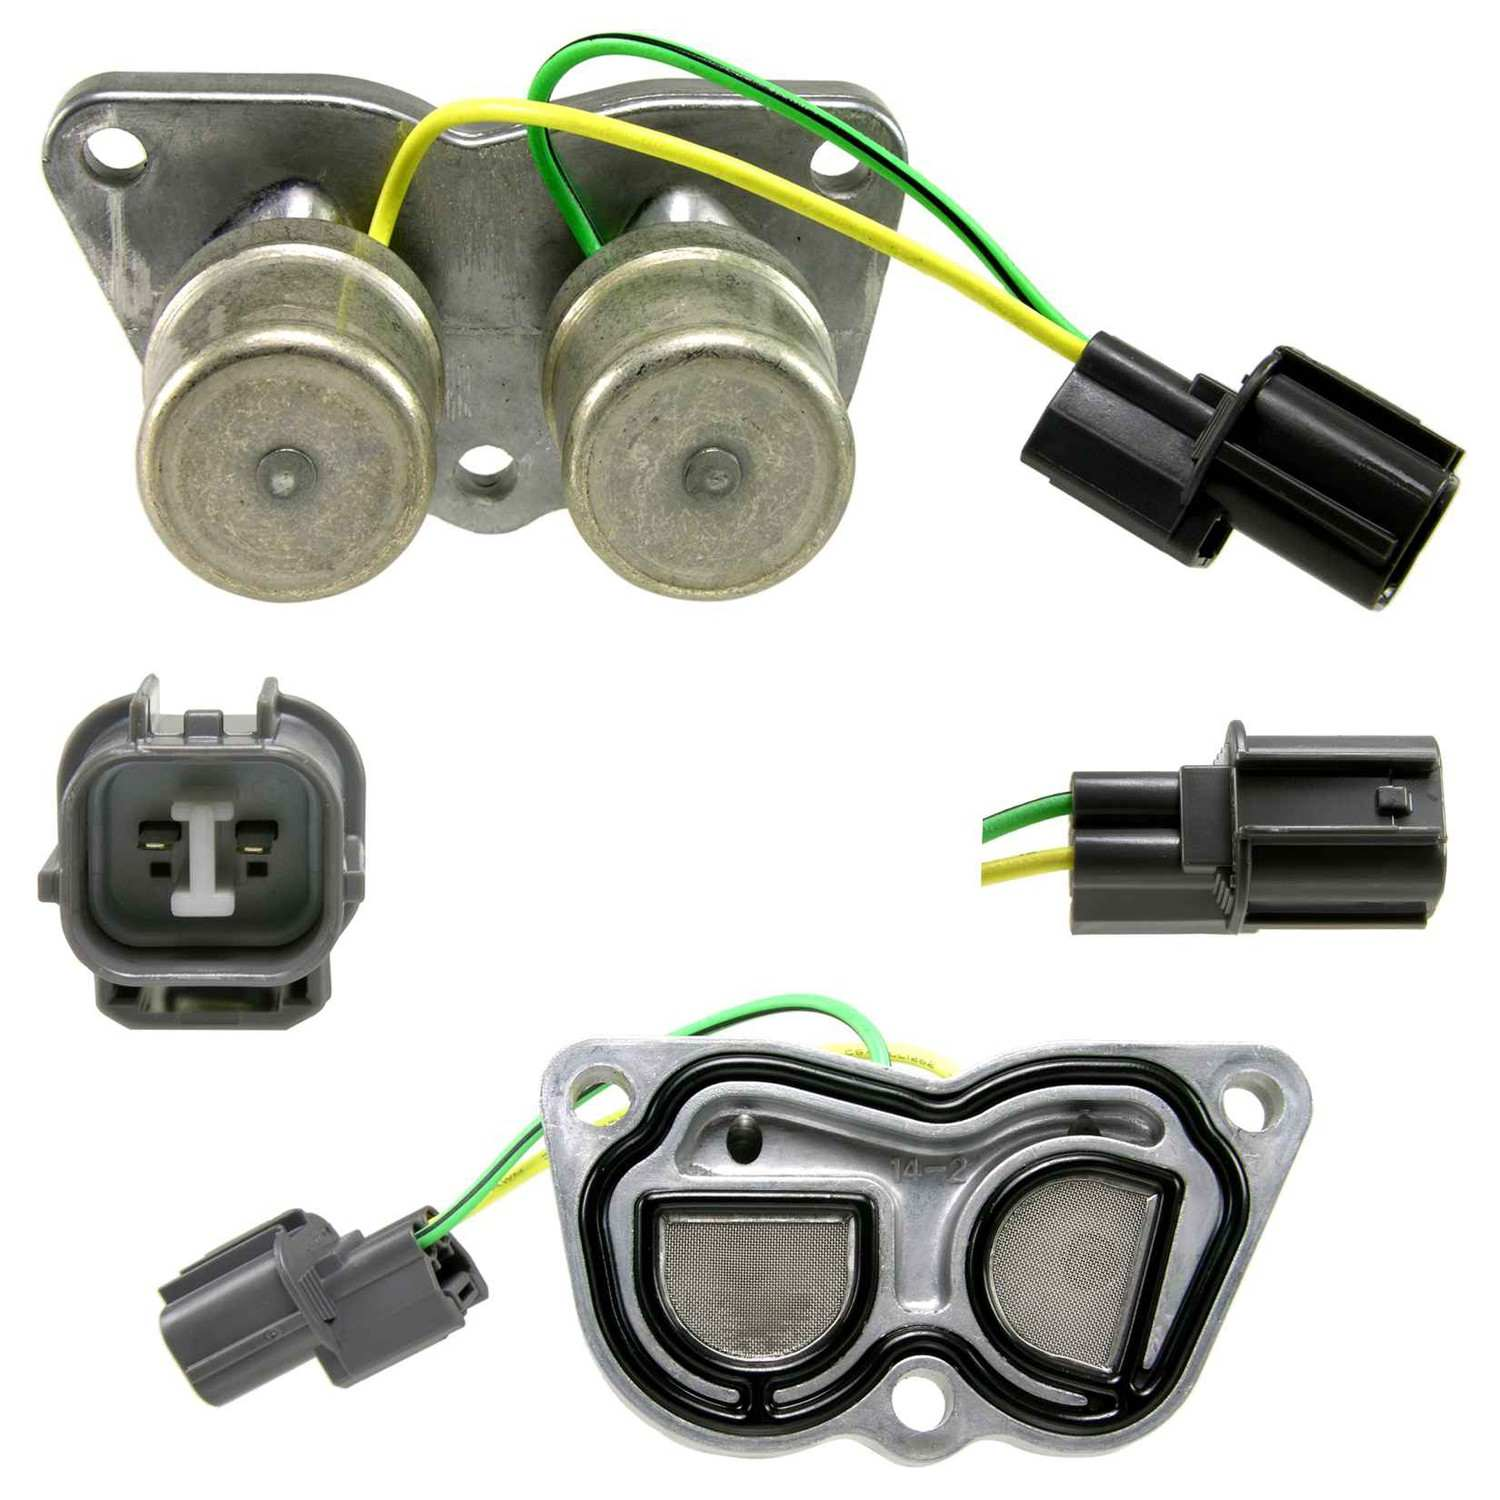 2N1207 torque converter solenoid transmission & drivetrain ebay Brake Wire Harness at arjmand.co